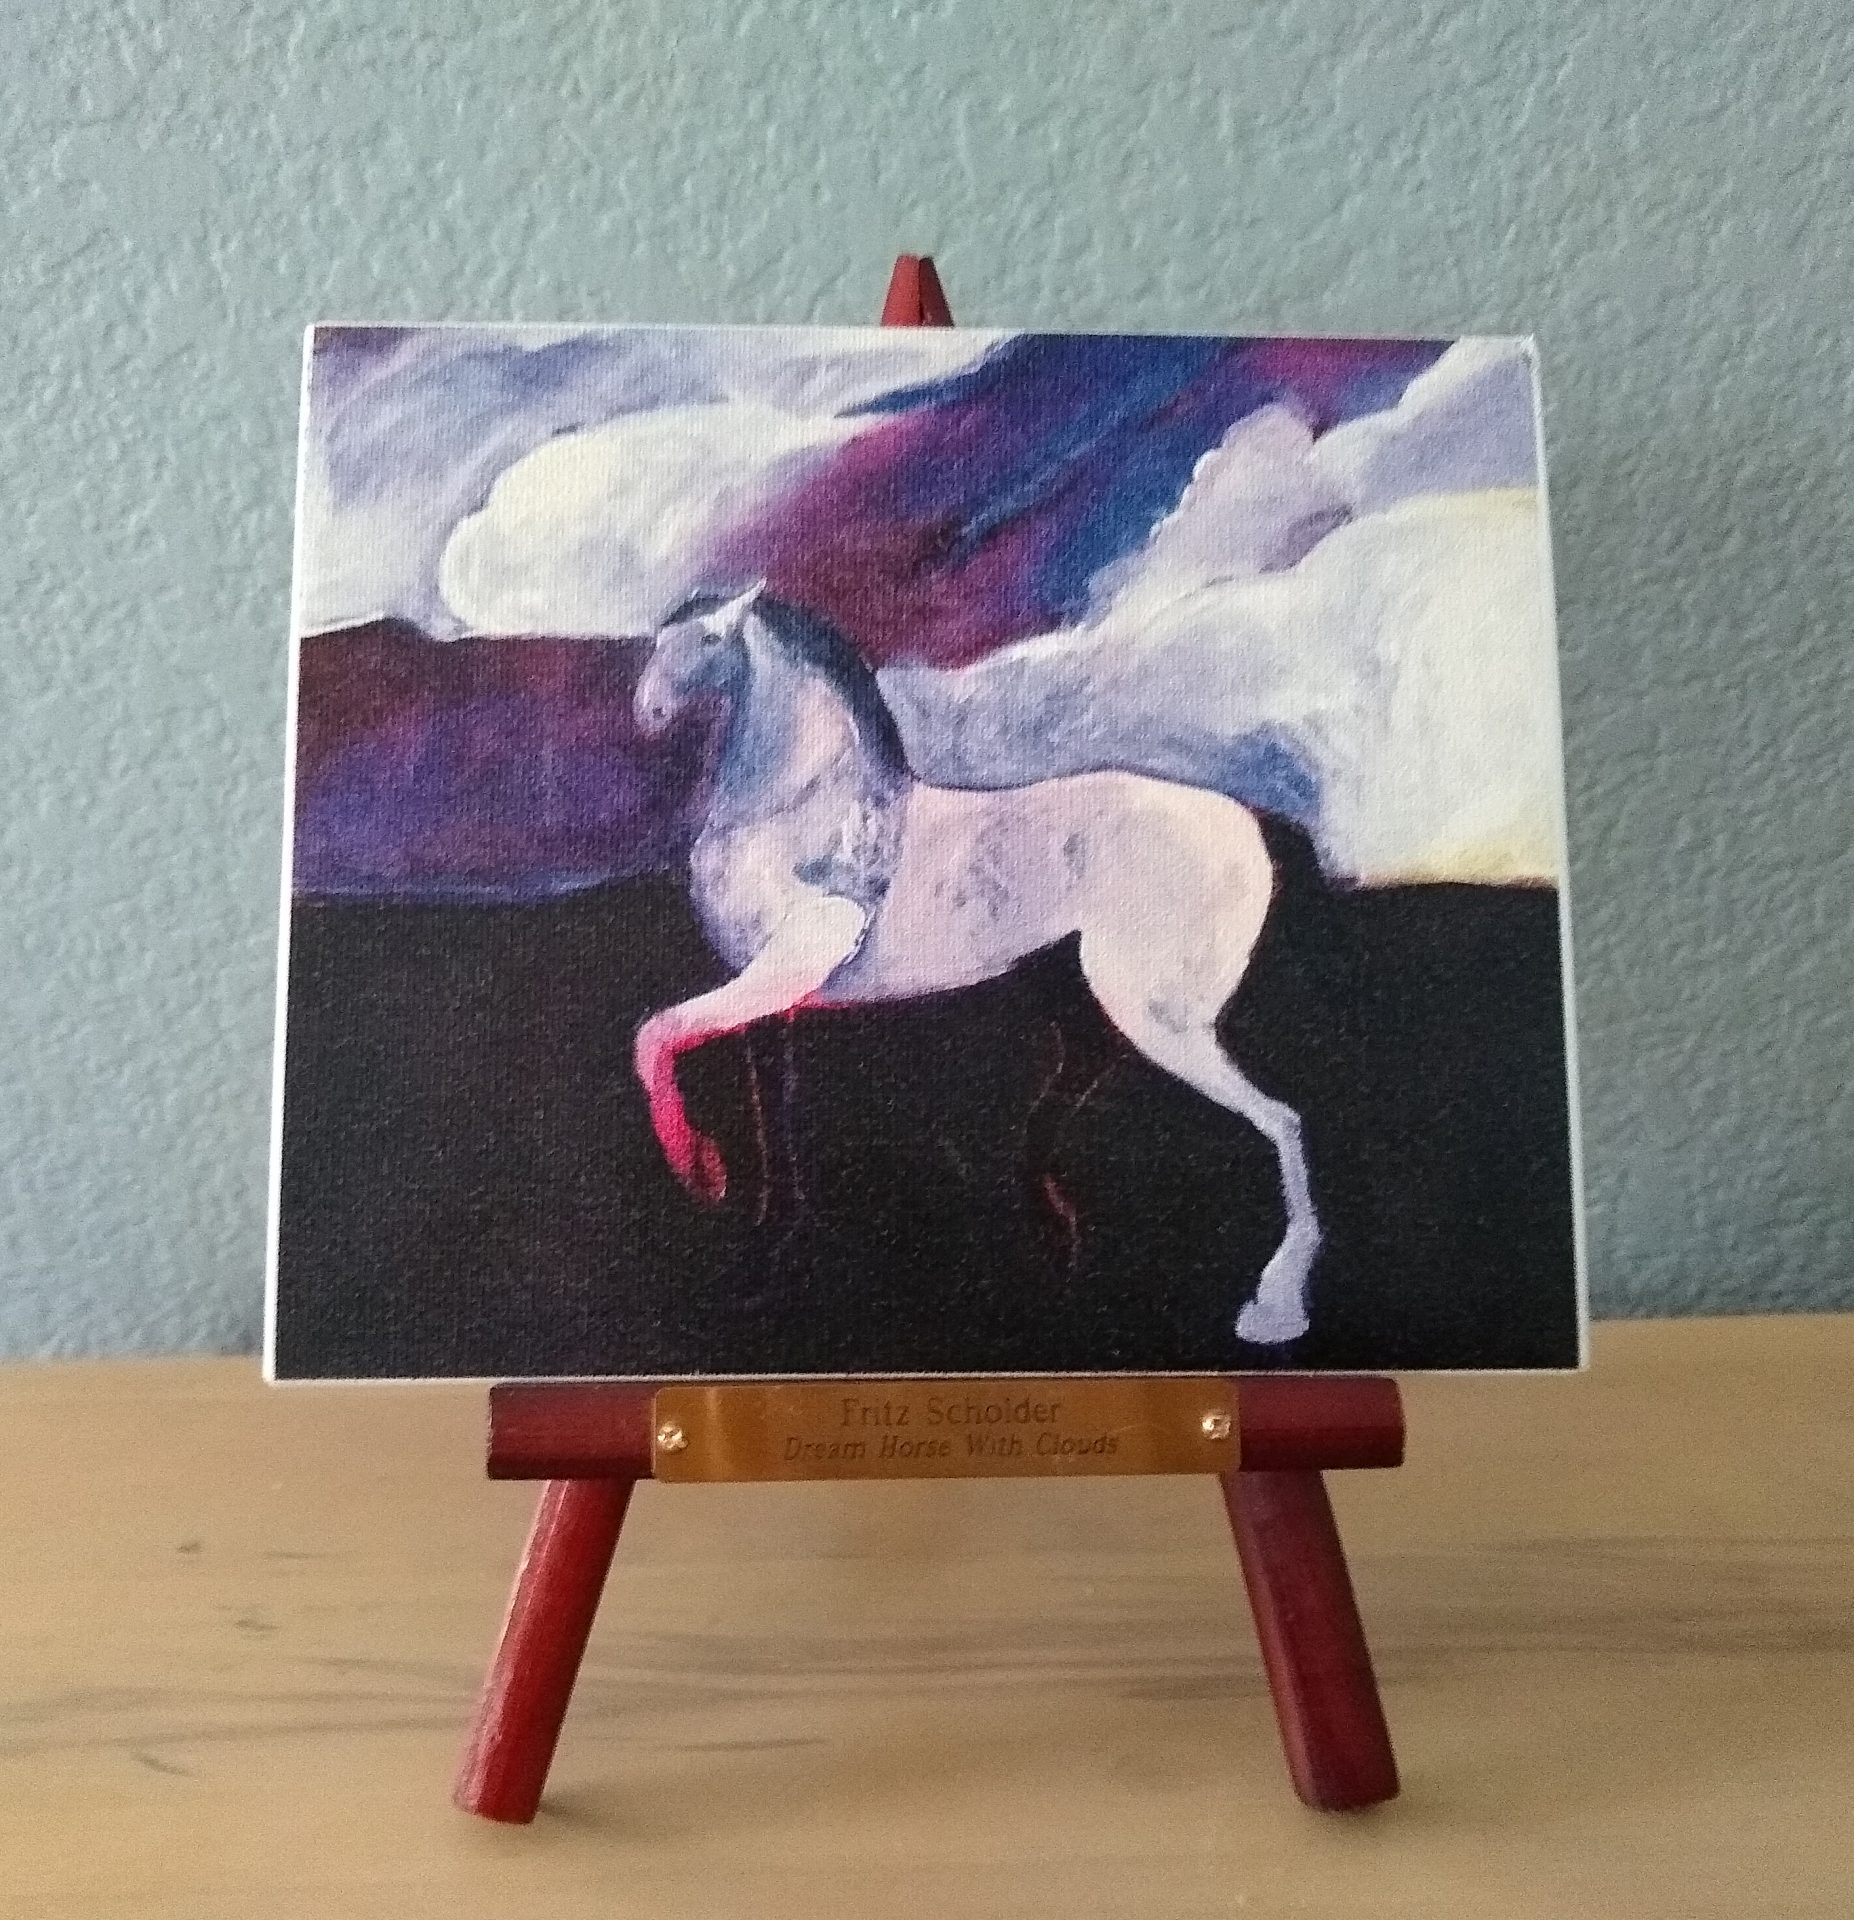 Fritz-Scholder-Dream-Horse-with-Clouds-The-Phoenician-Art-of-Excellence-Invitation